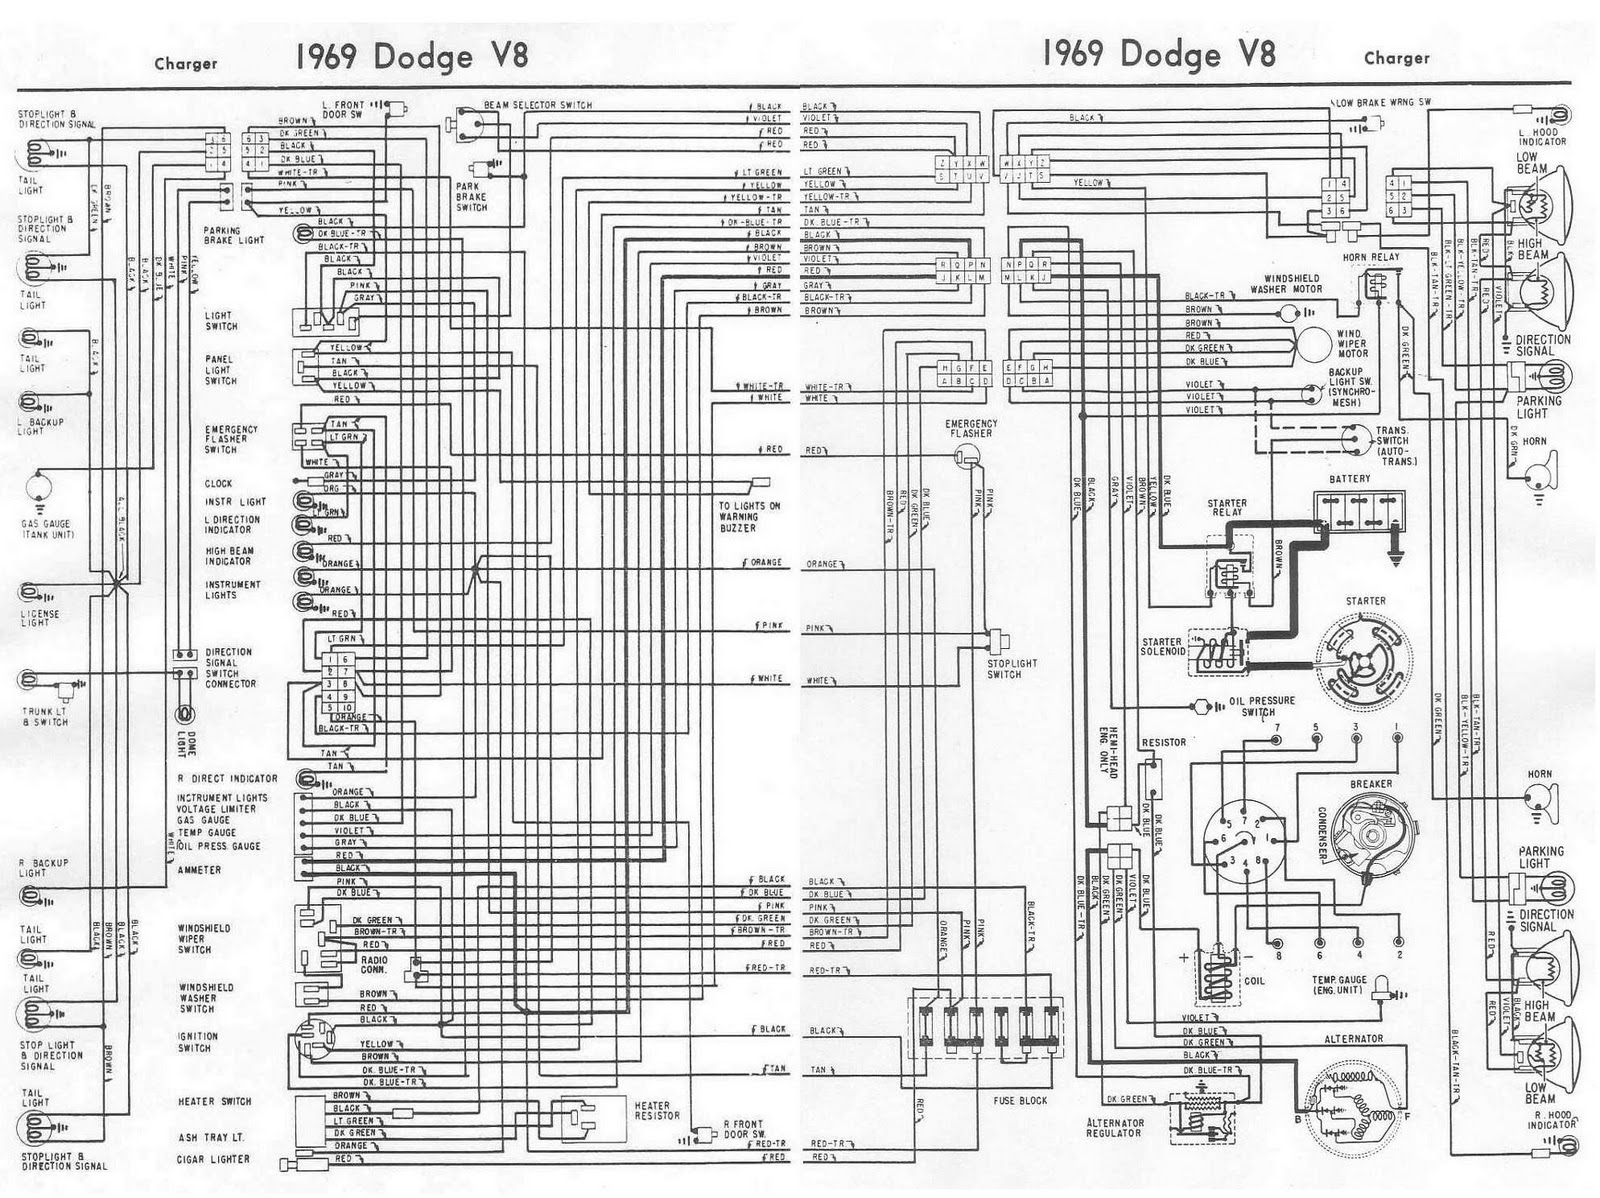 2013 Dodge Wiring Diagram